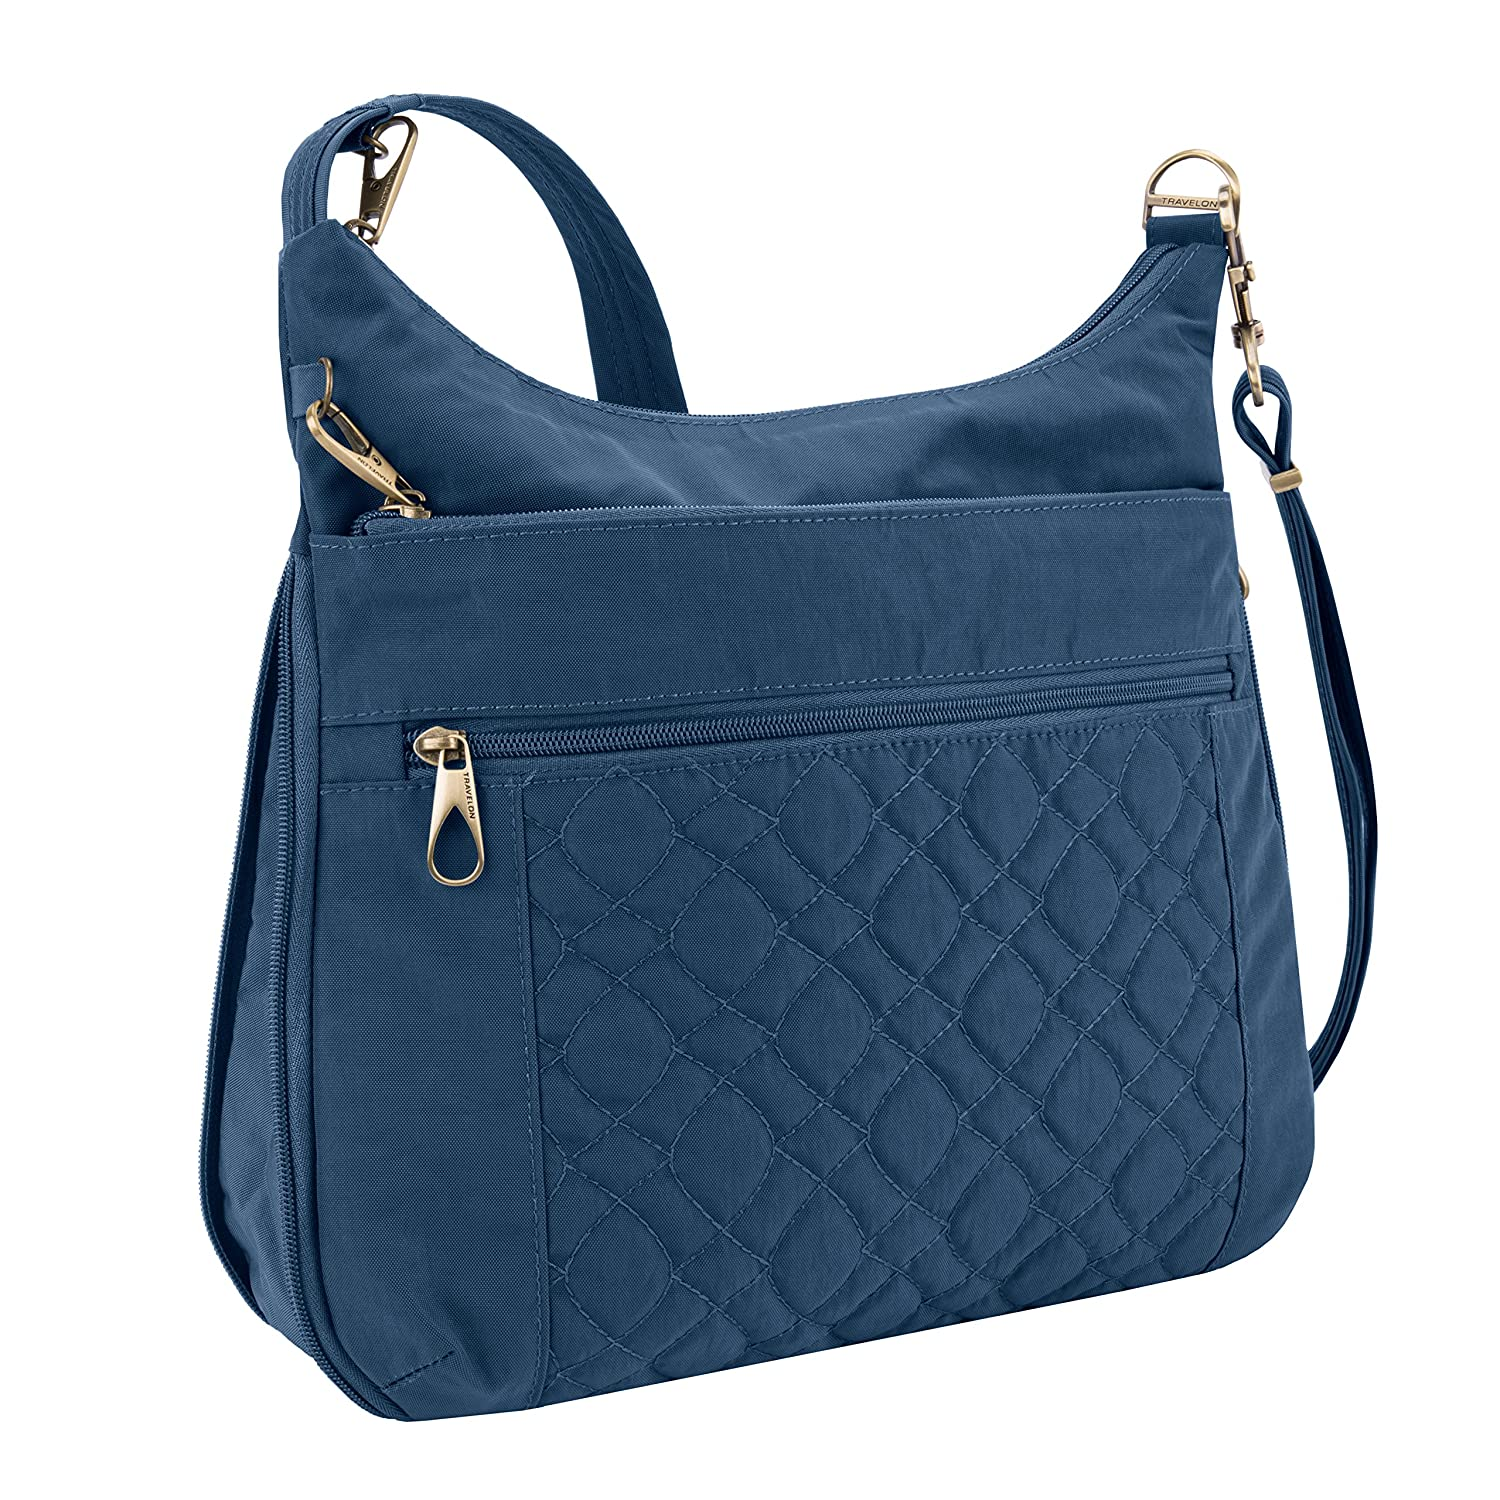 6964c0f382df Amazon.com  Travelon Anti-theft Signature Quilted Expansion Cross Body Bag